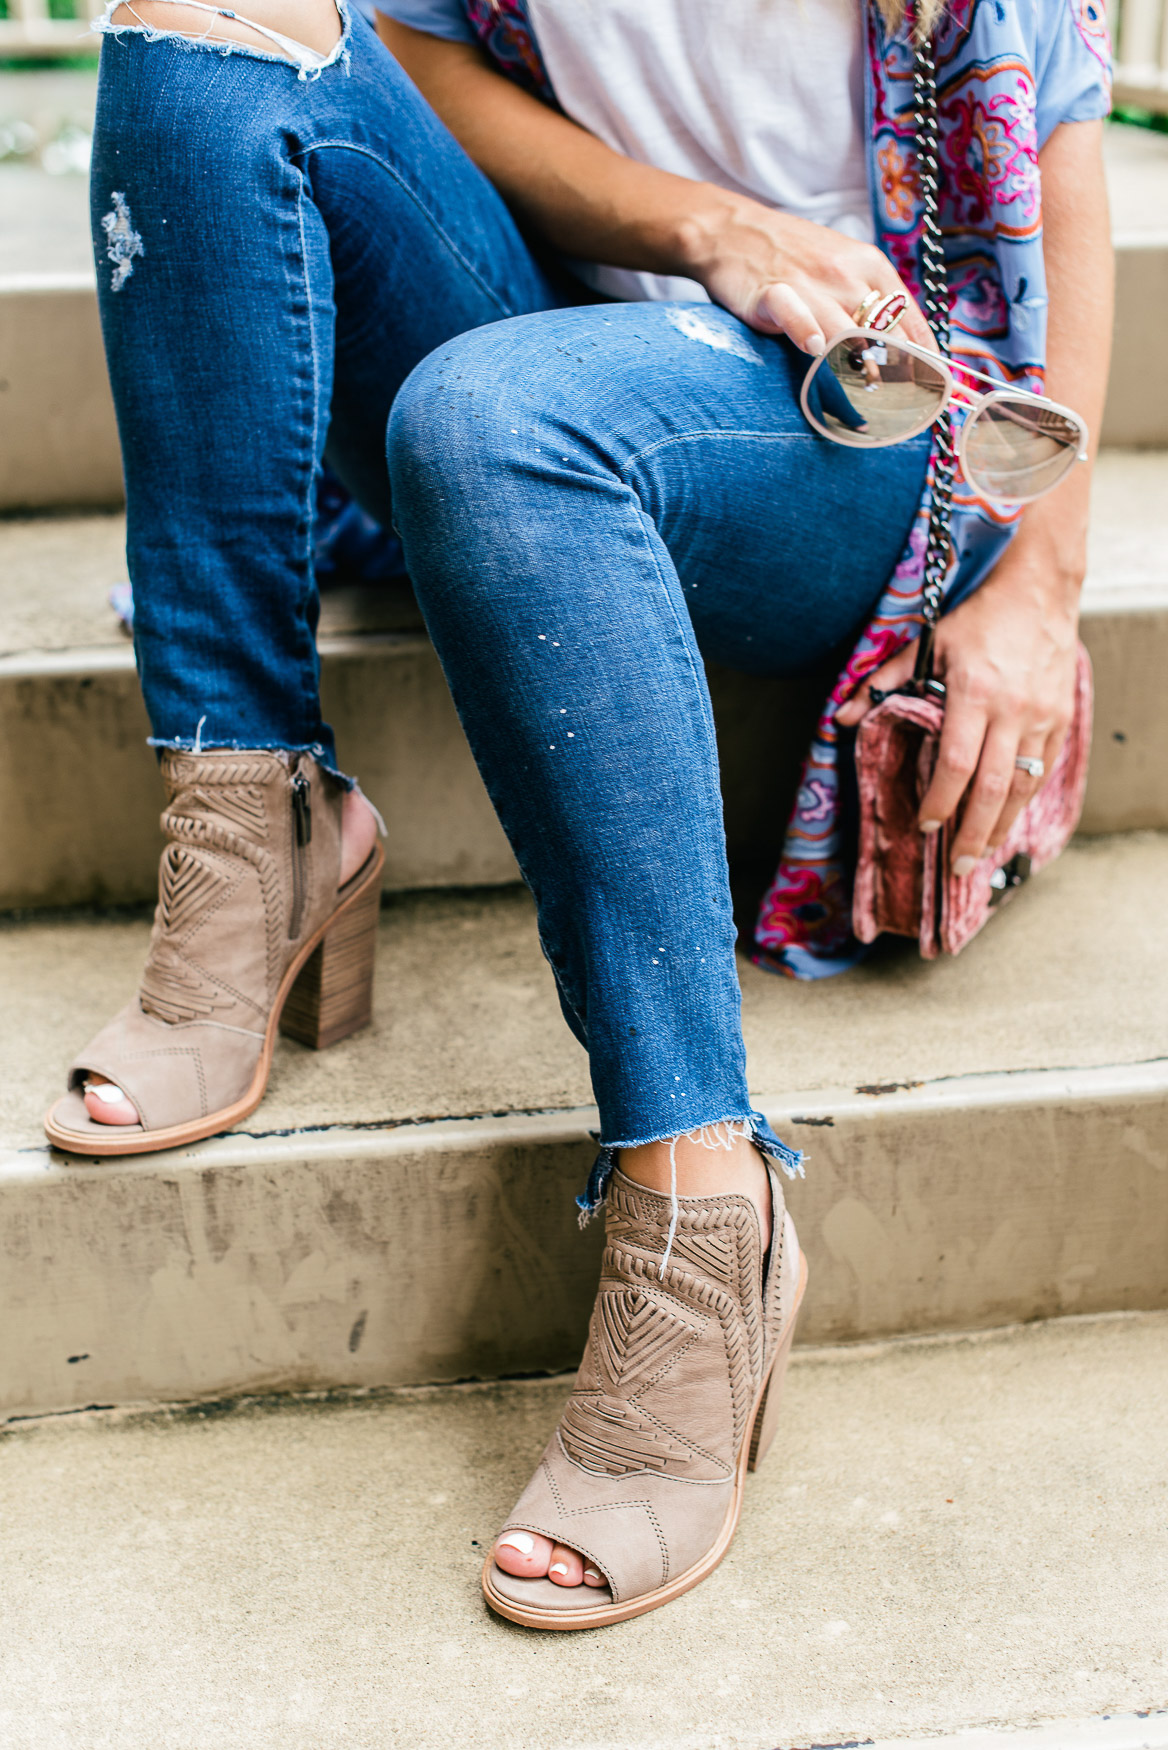 BOOTIES FOR FALL // UPDATE YOUR CLOSET FOR SEASONS